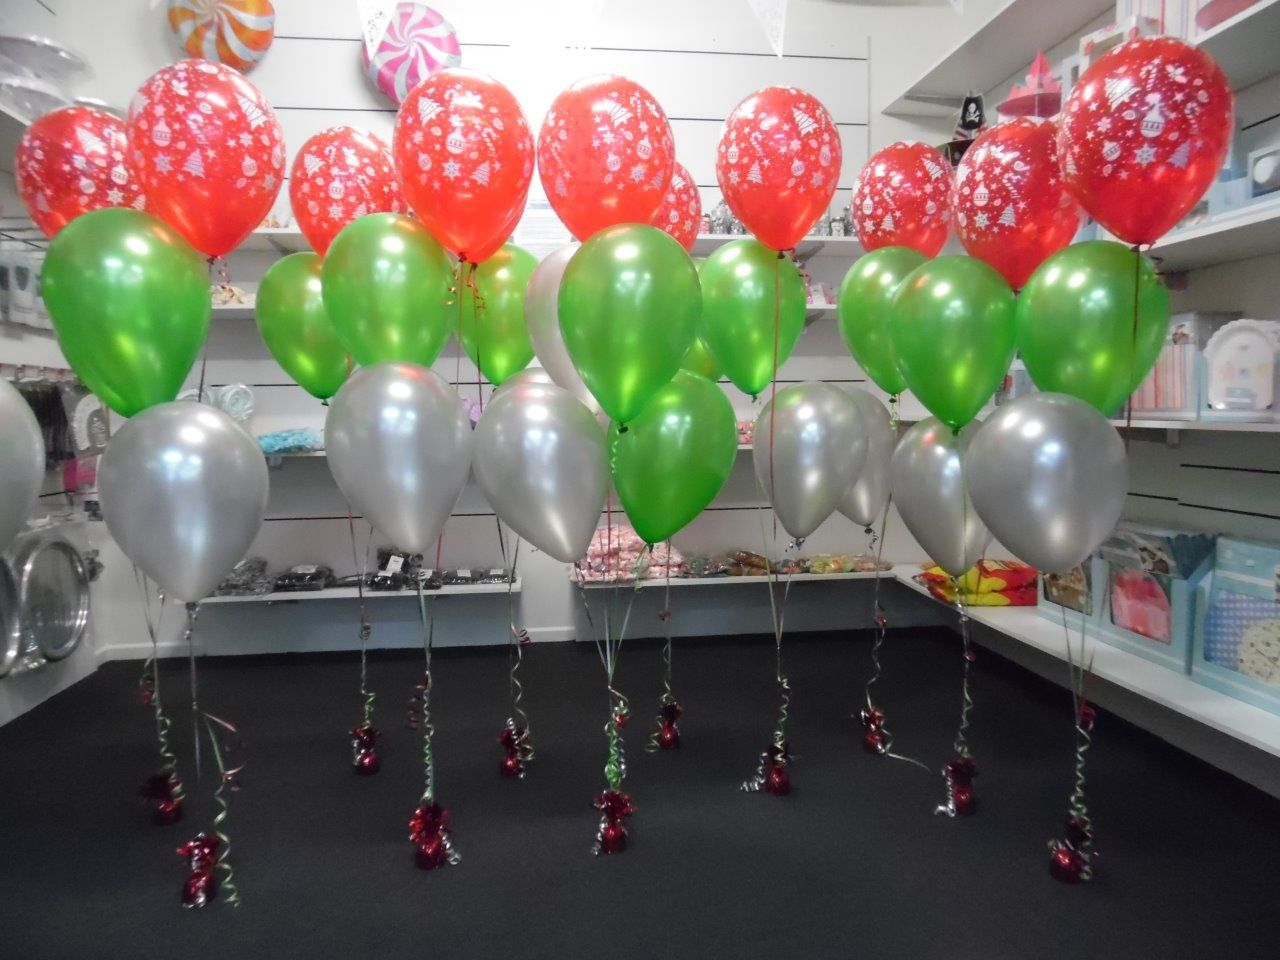 Awesome Party Supplies Shop On The Gold Coast Designing Christmas Balloon  Arrangements For All Theme And Sized Events.